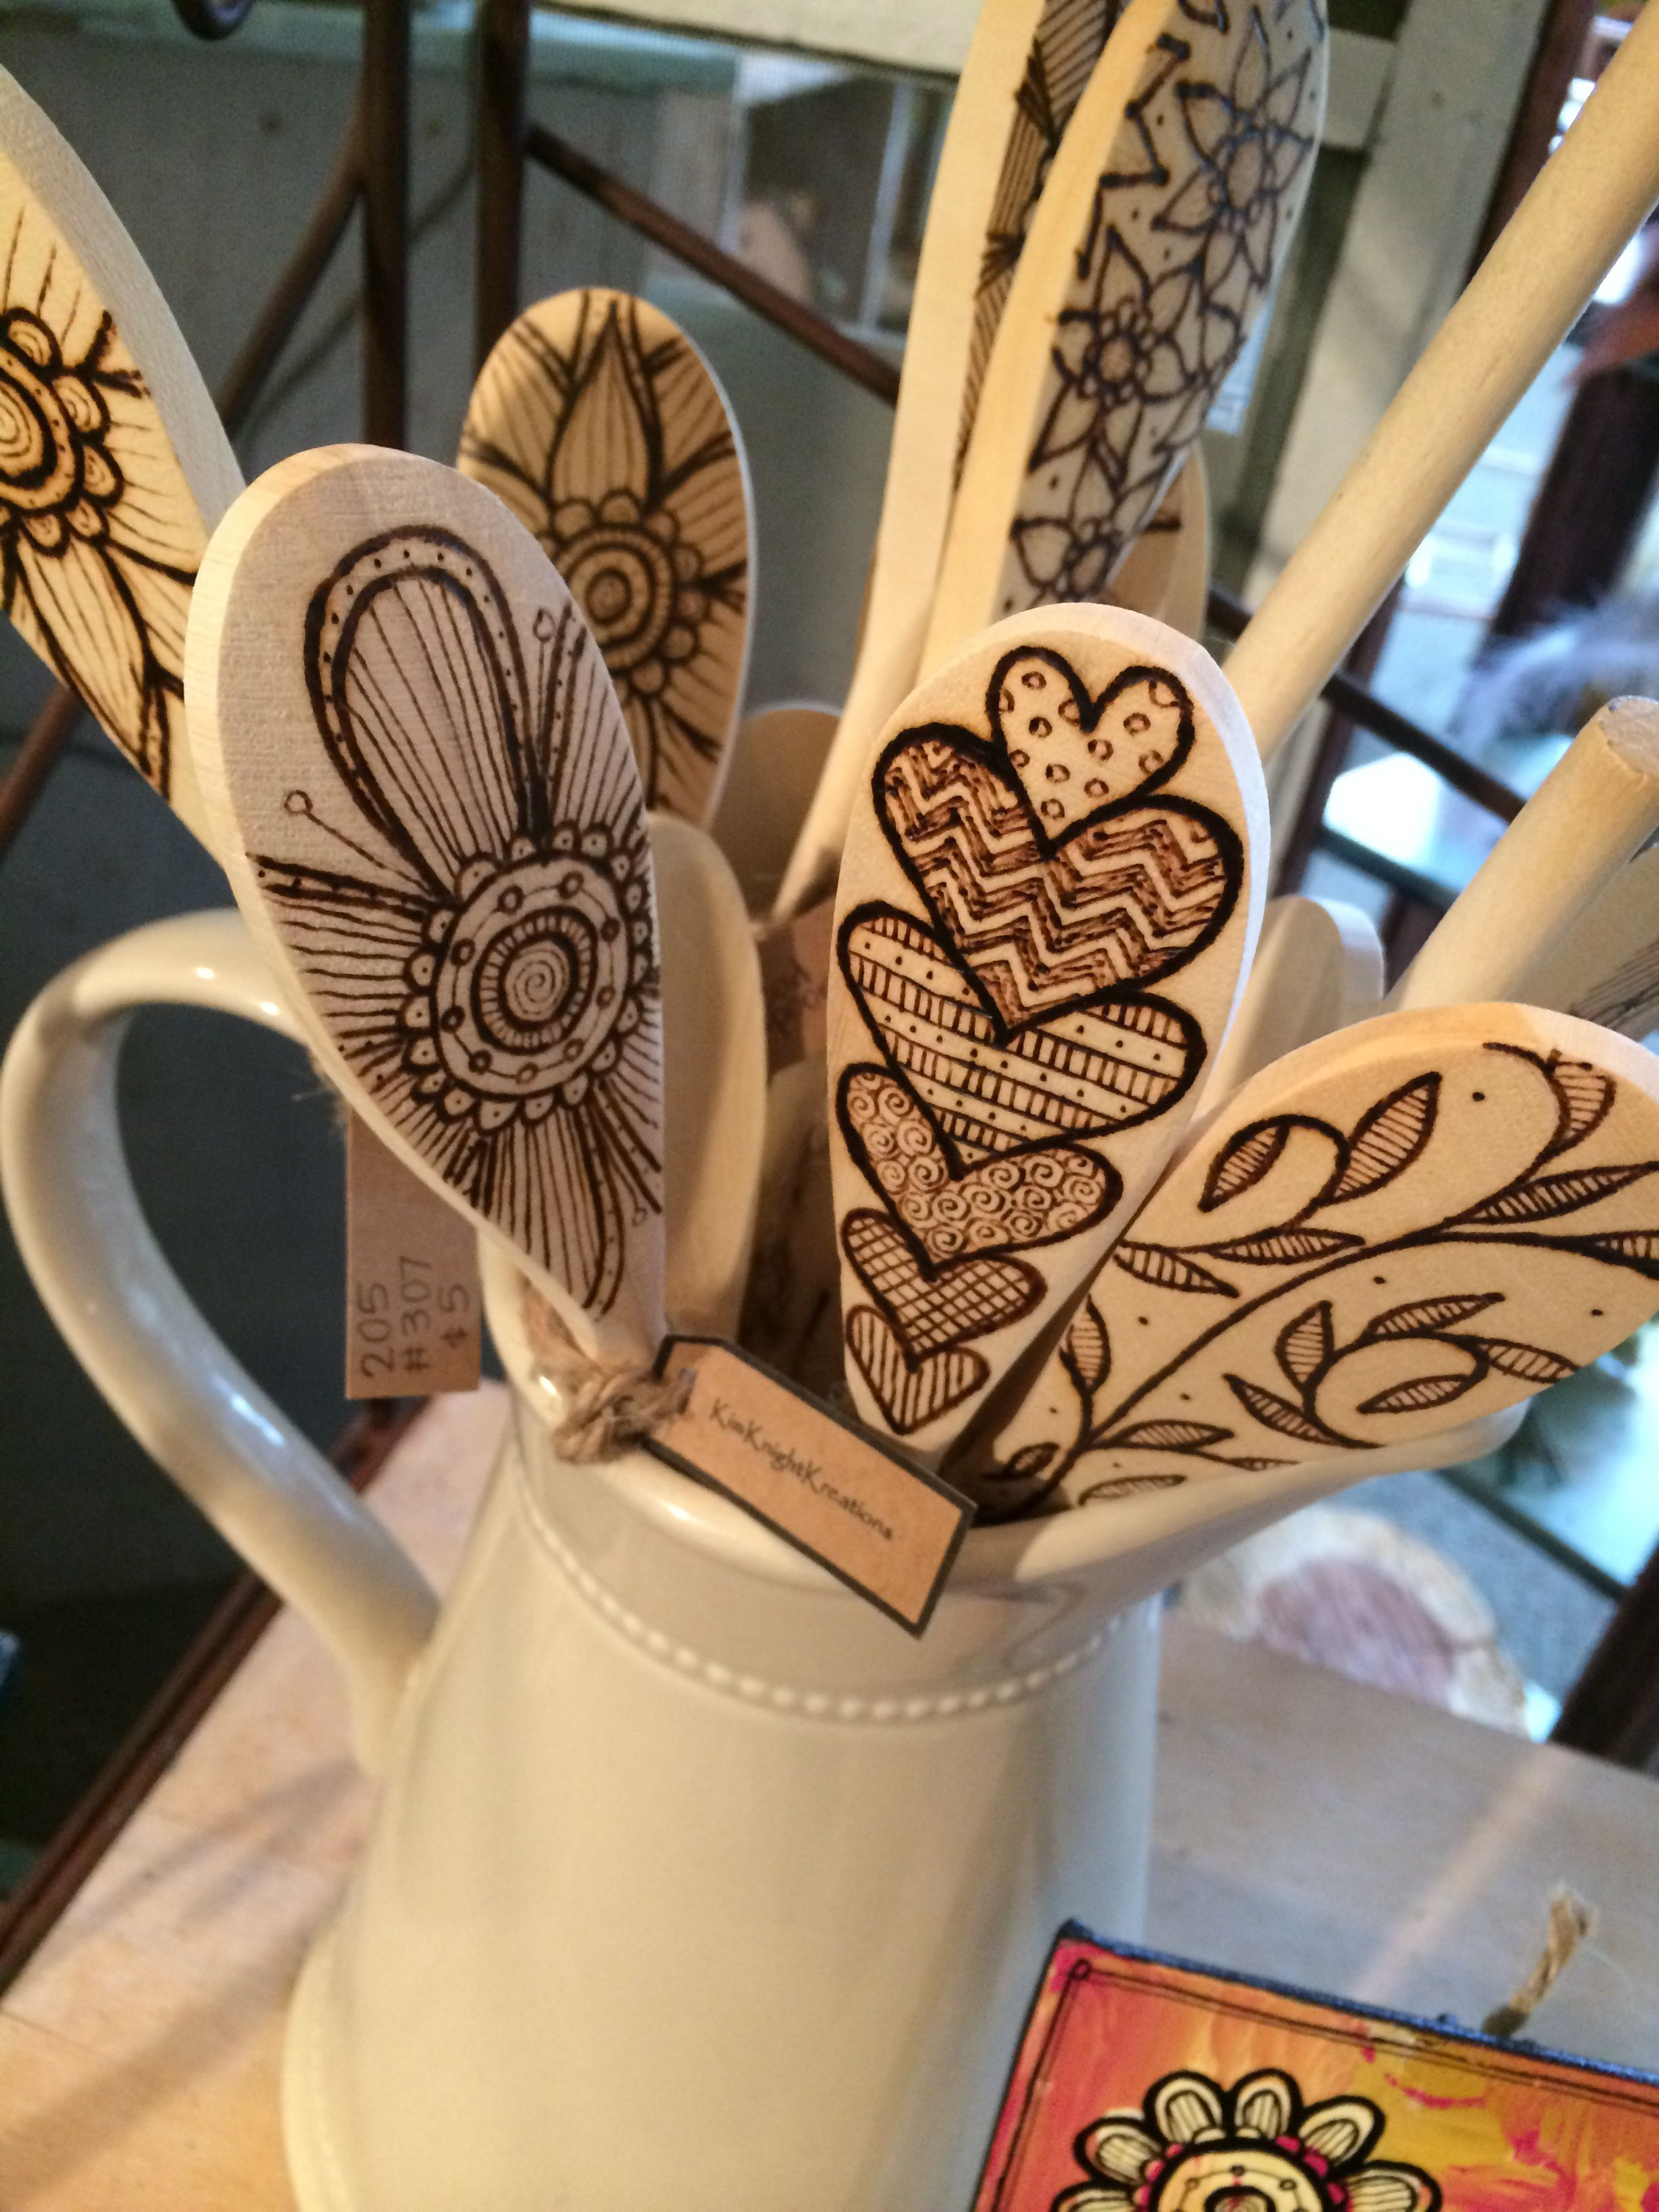 Wood Burned Spoons A Very Good Looking Set I Like The Cascading Hearts The Exploding Flowers In Particu Wood Burn Spoons Wood Burning Art Diy Wood Projects